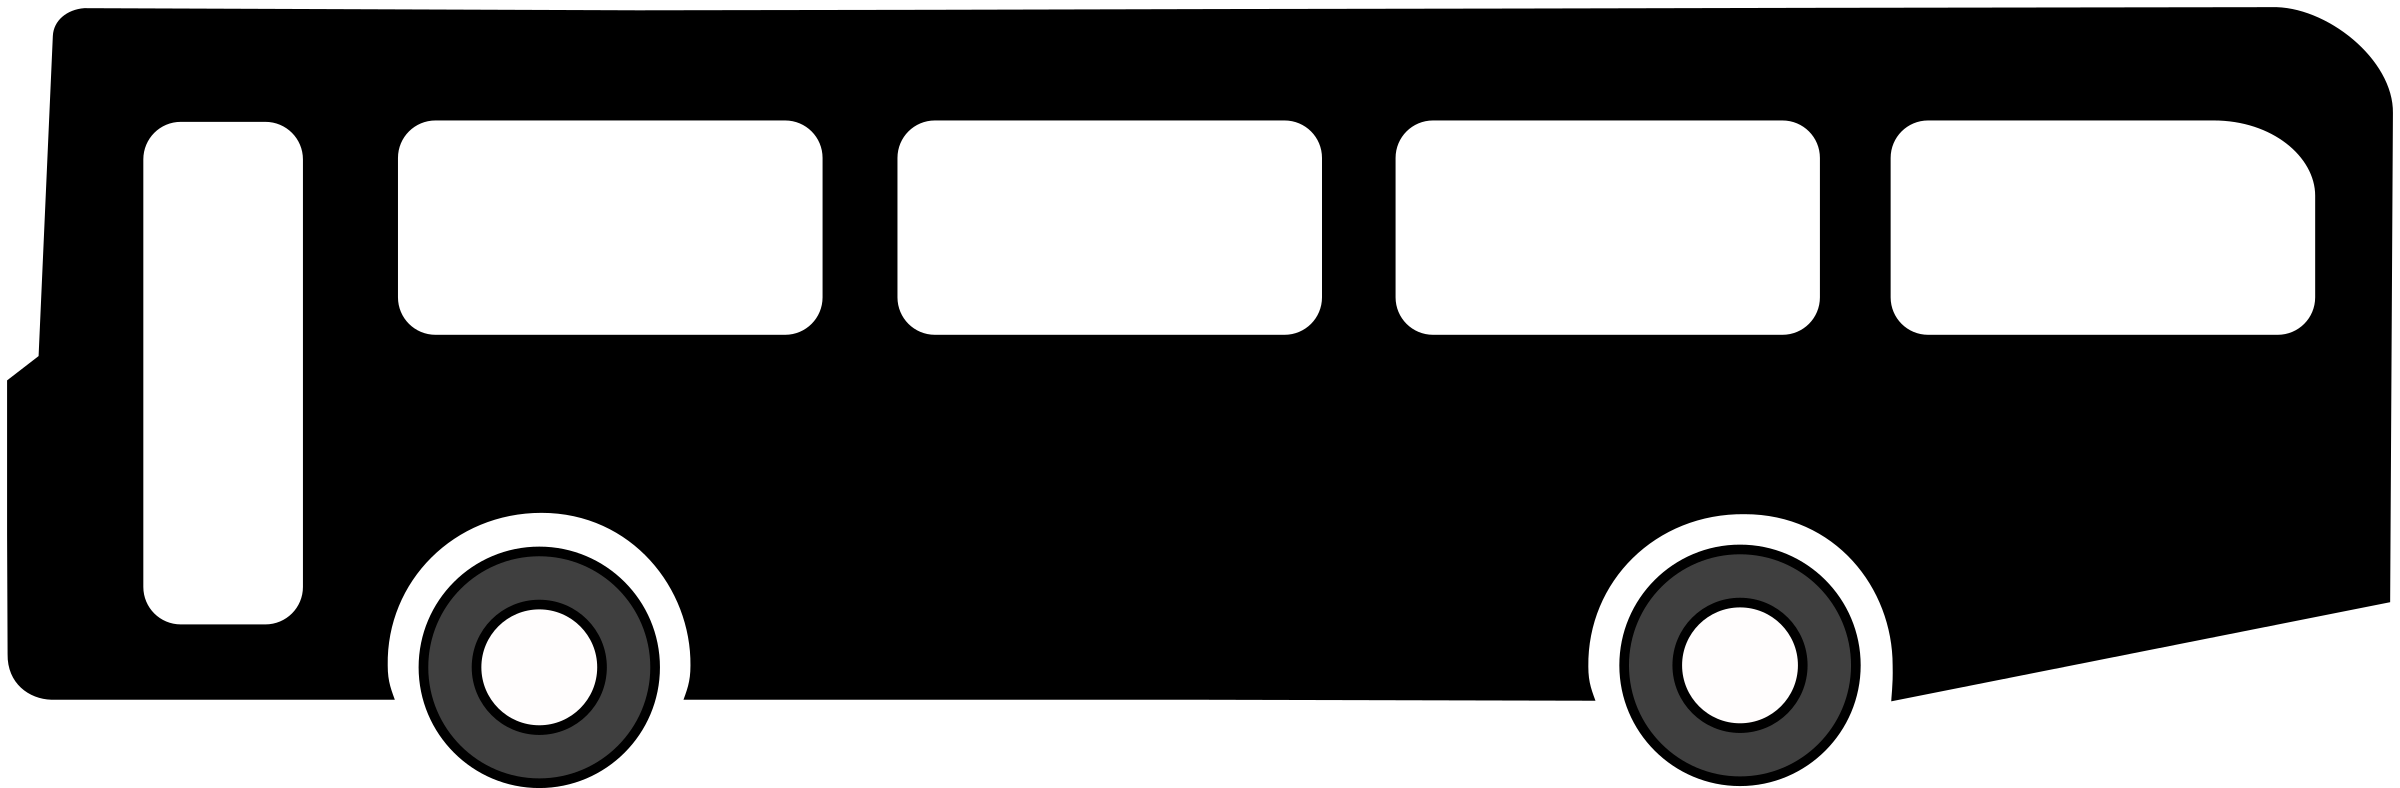 Bus clipart icon. Symbol black icons png